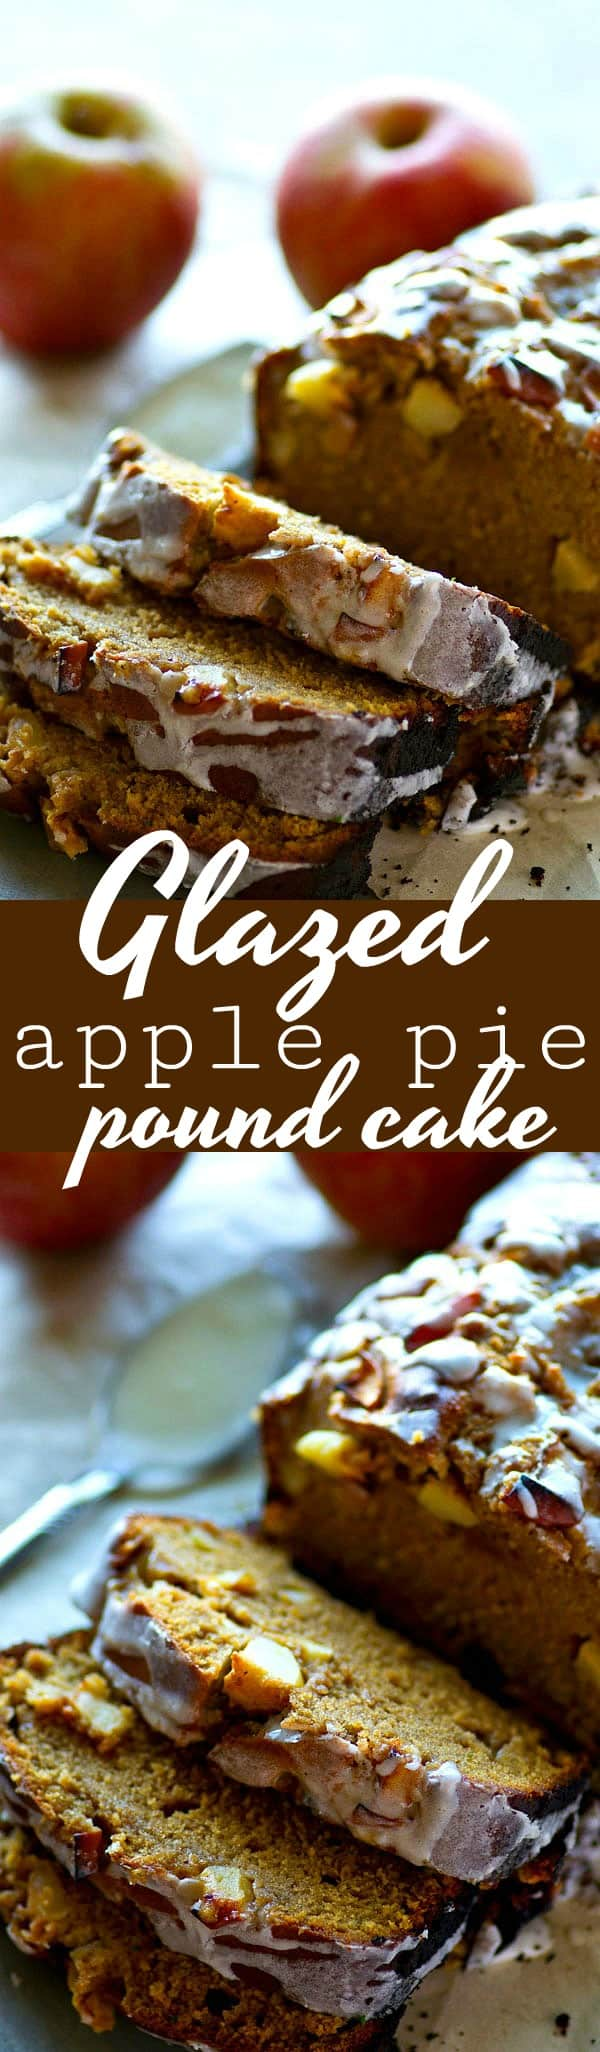 This glazed apple pie pound cake is SUPER soft inside, loaded with tons of tender apples and spices, and drizzled with lots of vanilla glaze. --- your new favorite fall cake!